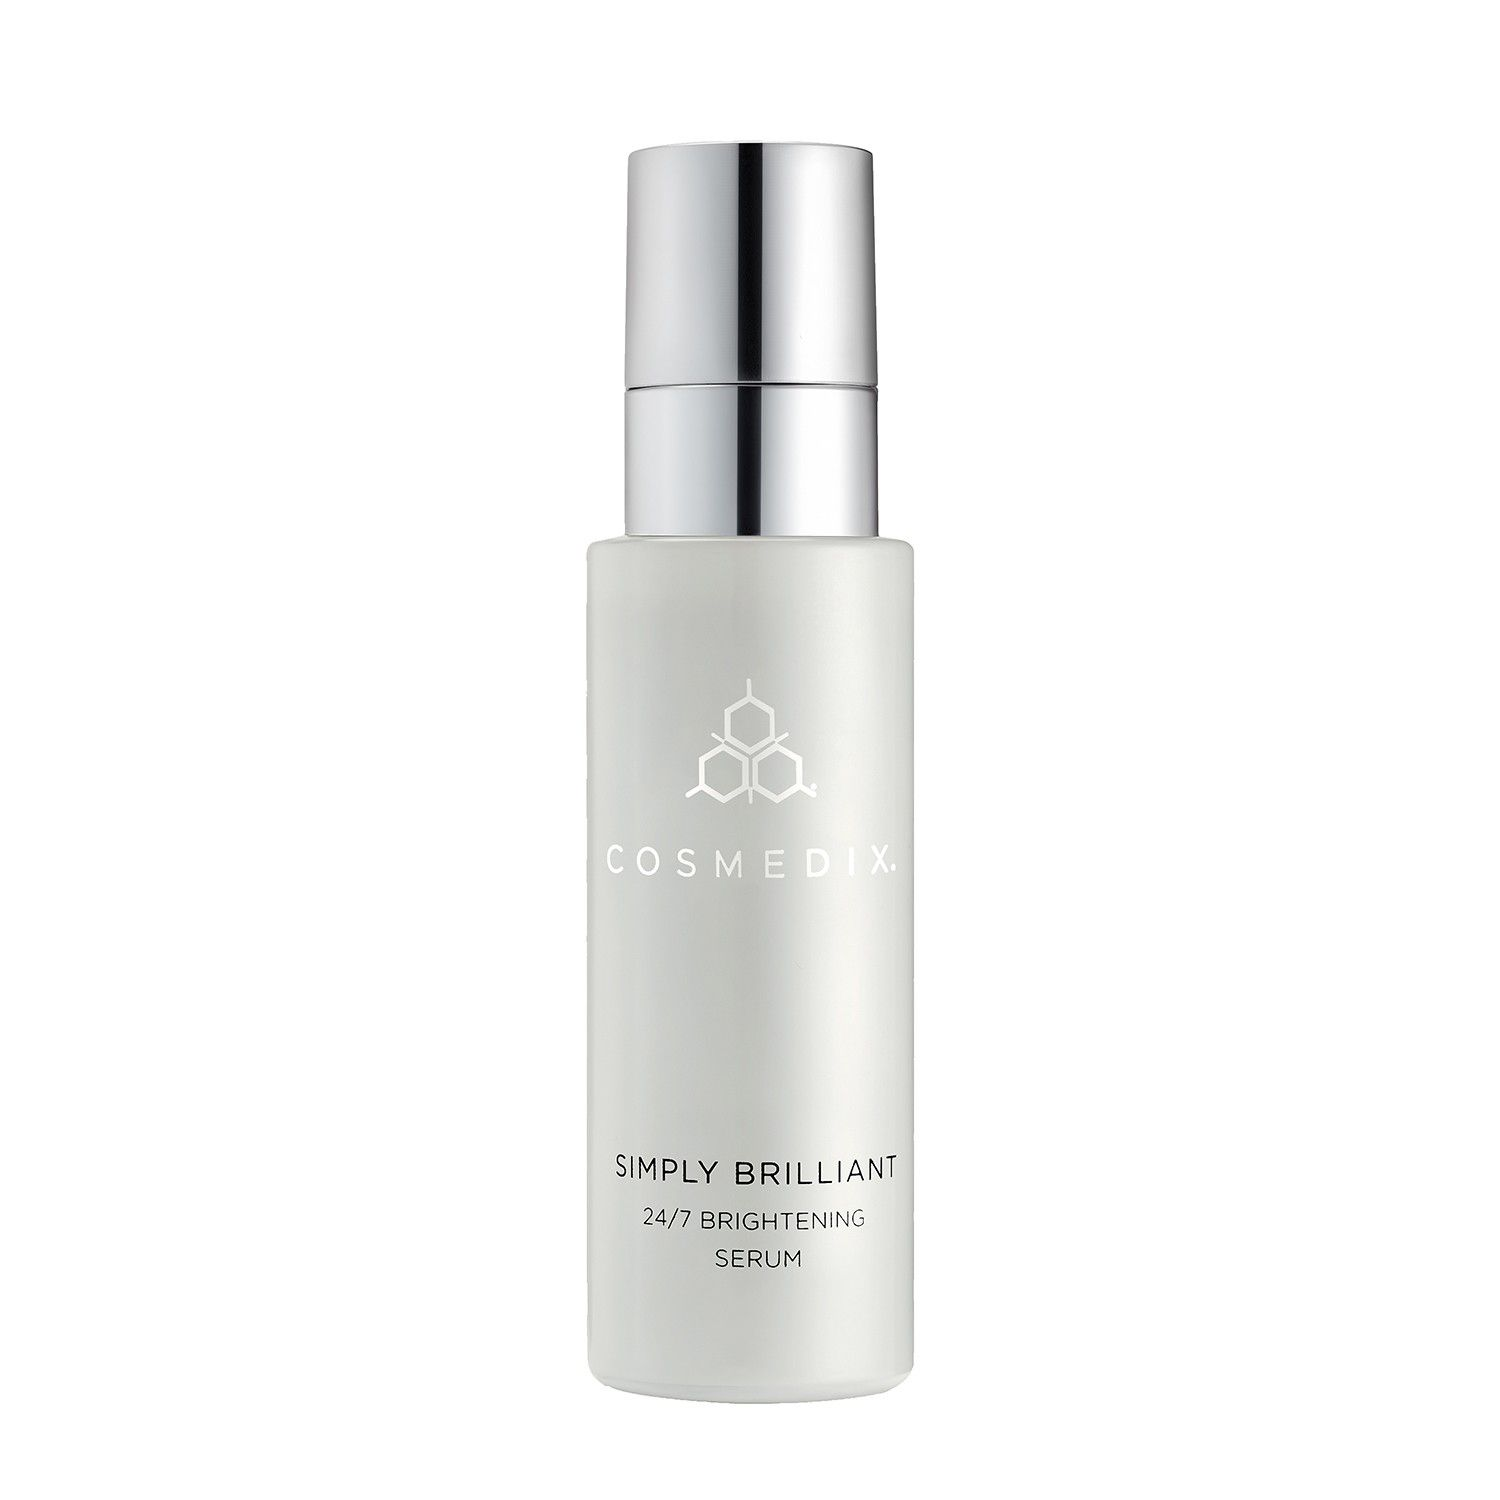 CosMedix SIMPLY BRILLIANT 24/7 BRIGHTENING SERUM (1.0 fl oz / 30 ml)